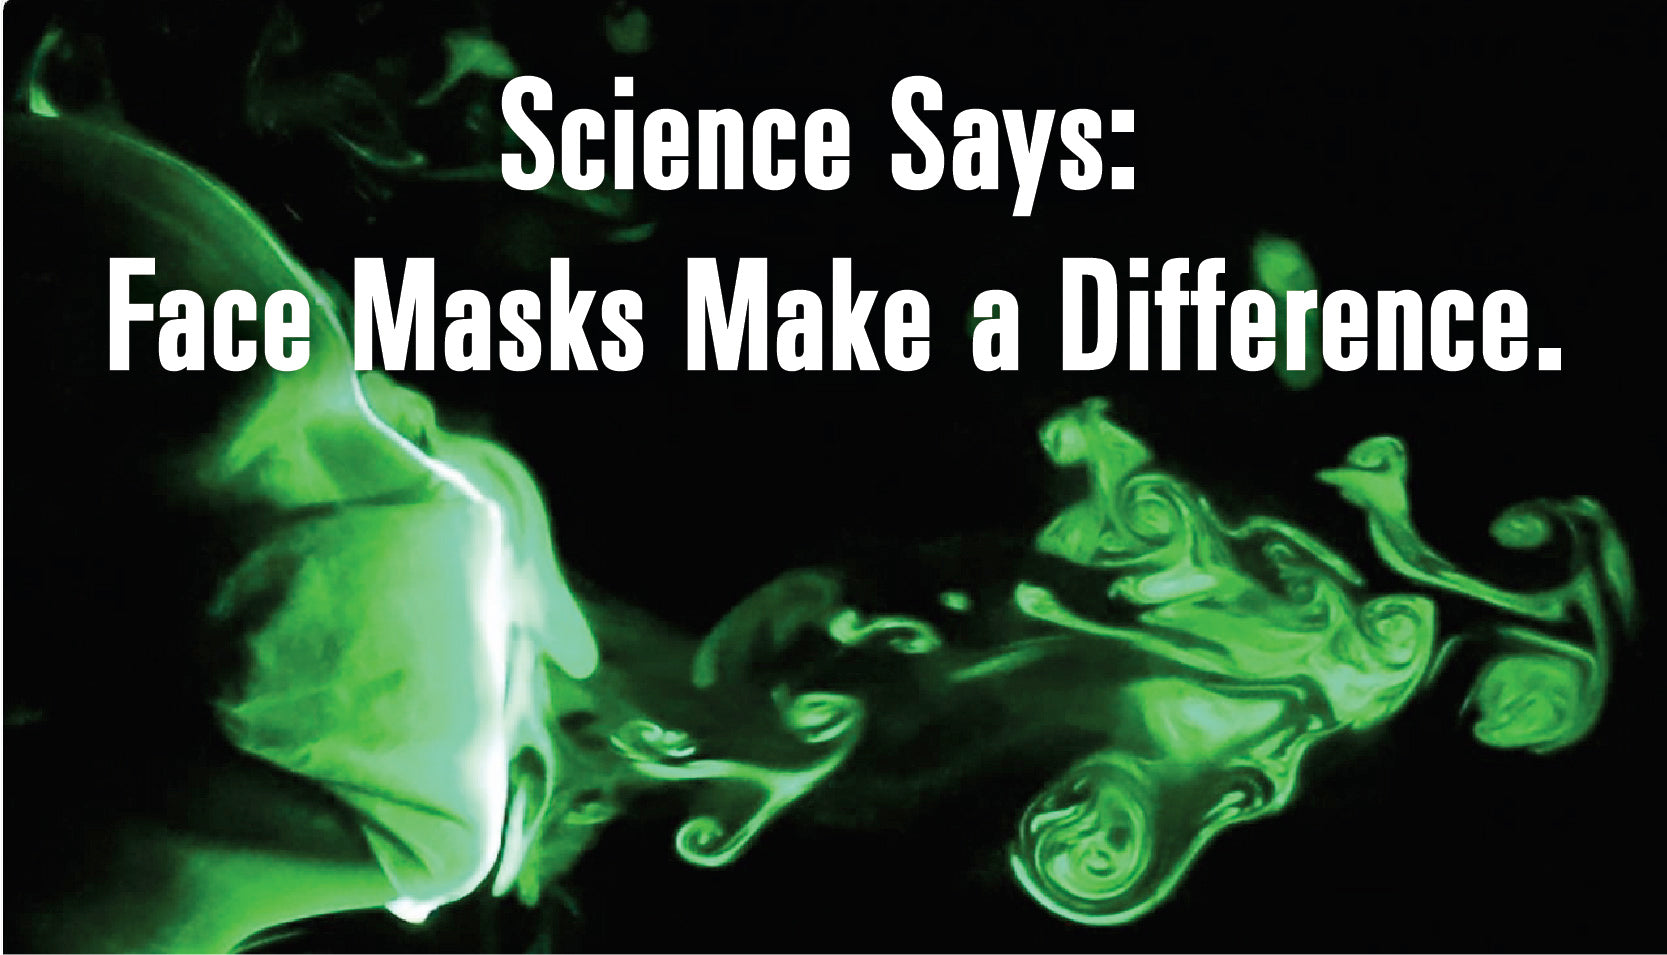 Science Says: Face Masks Make a Difference